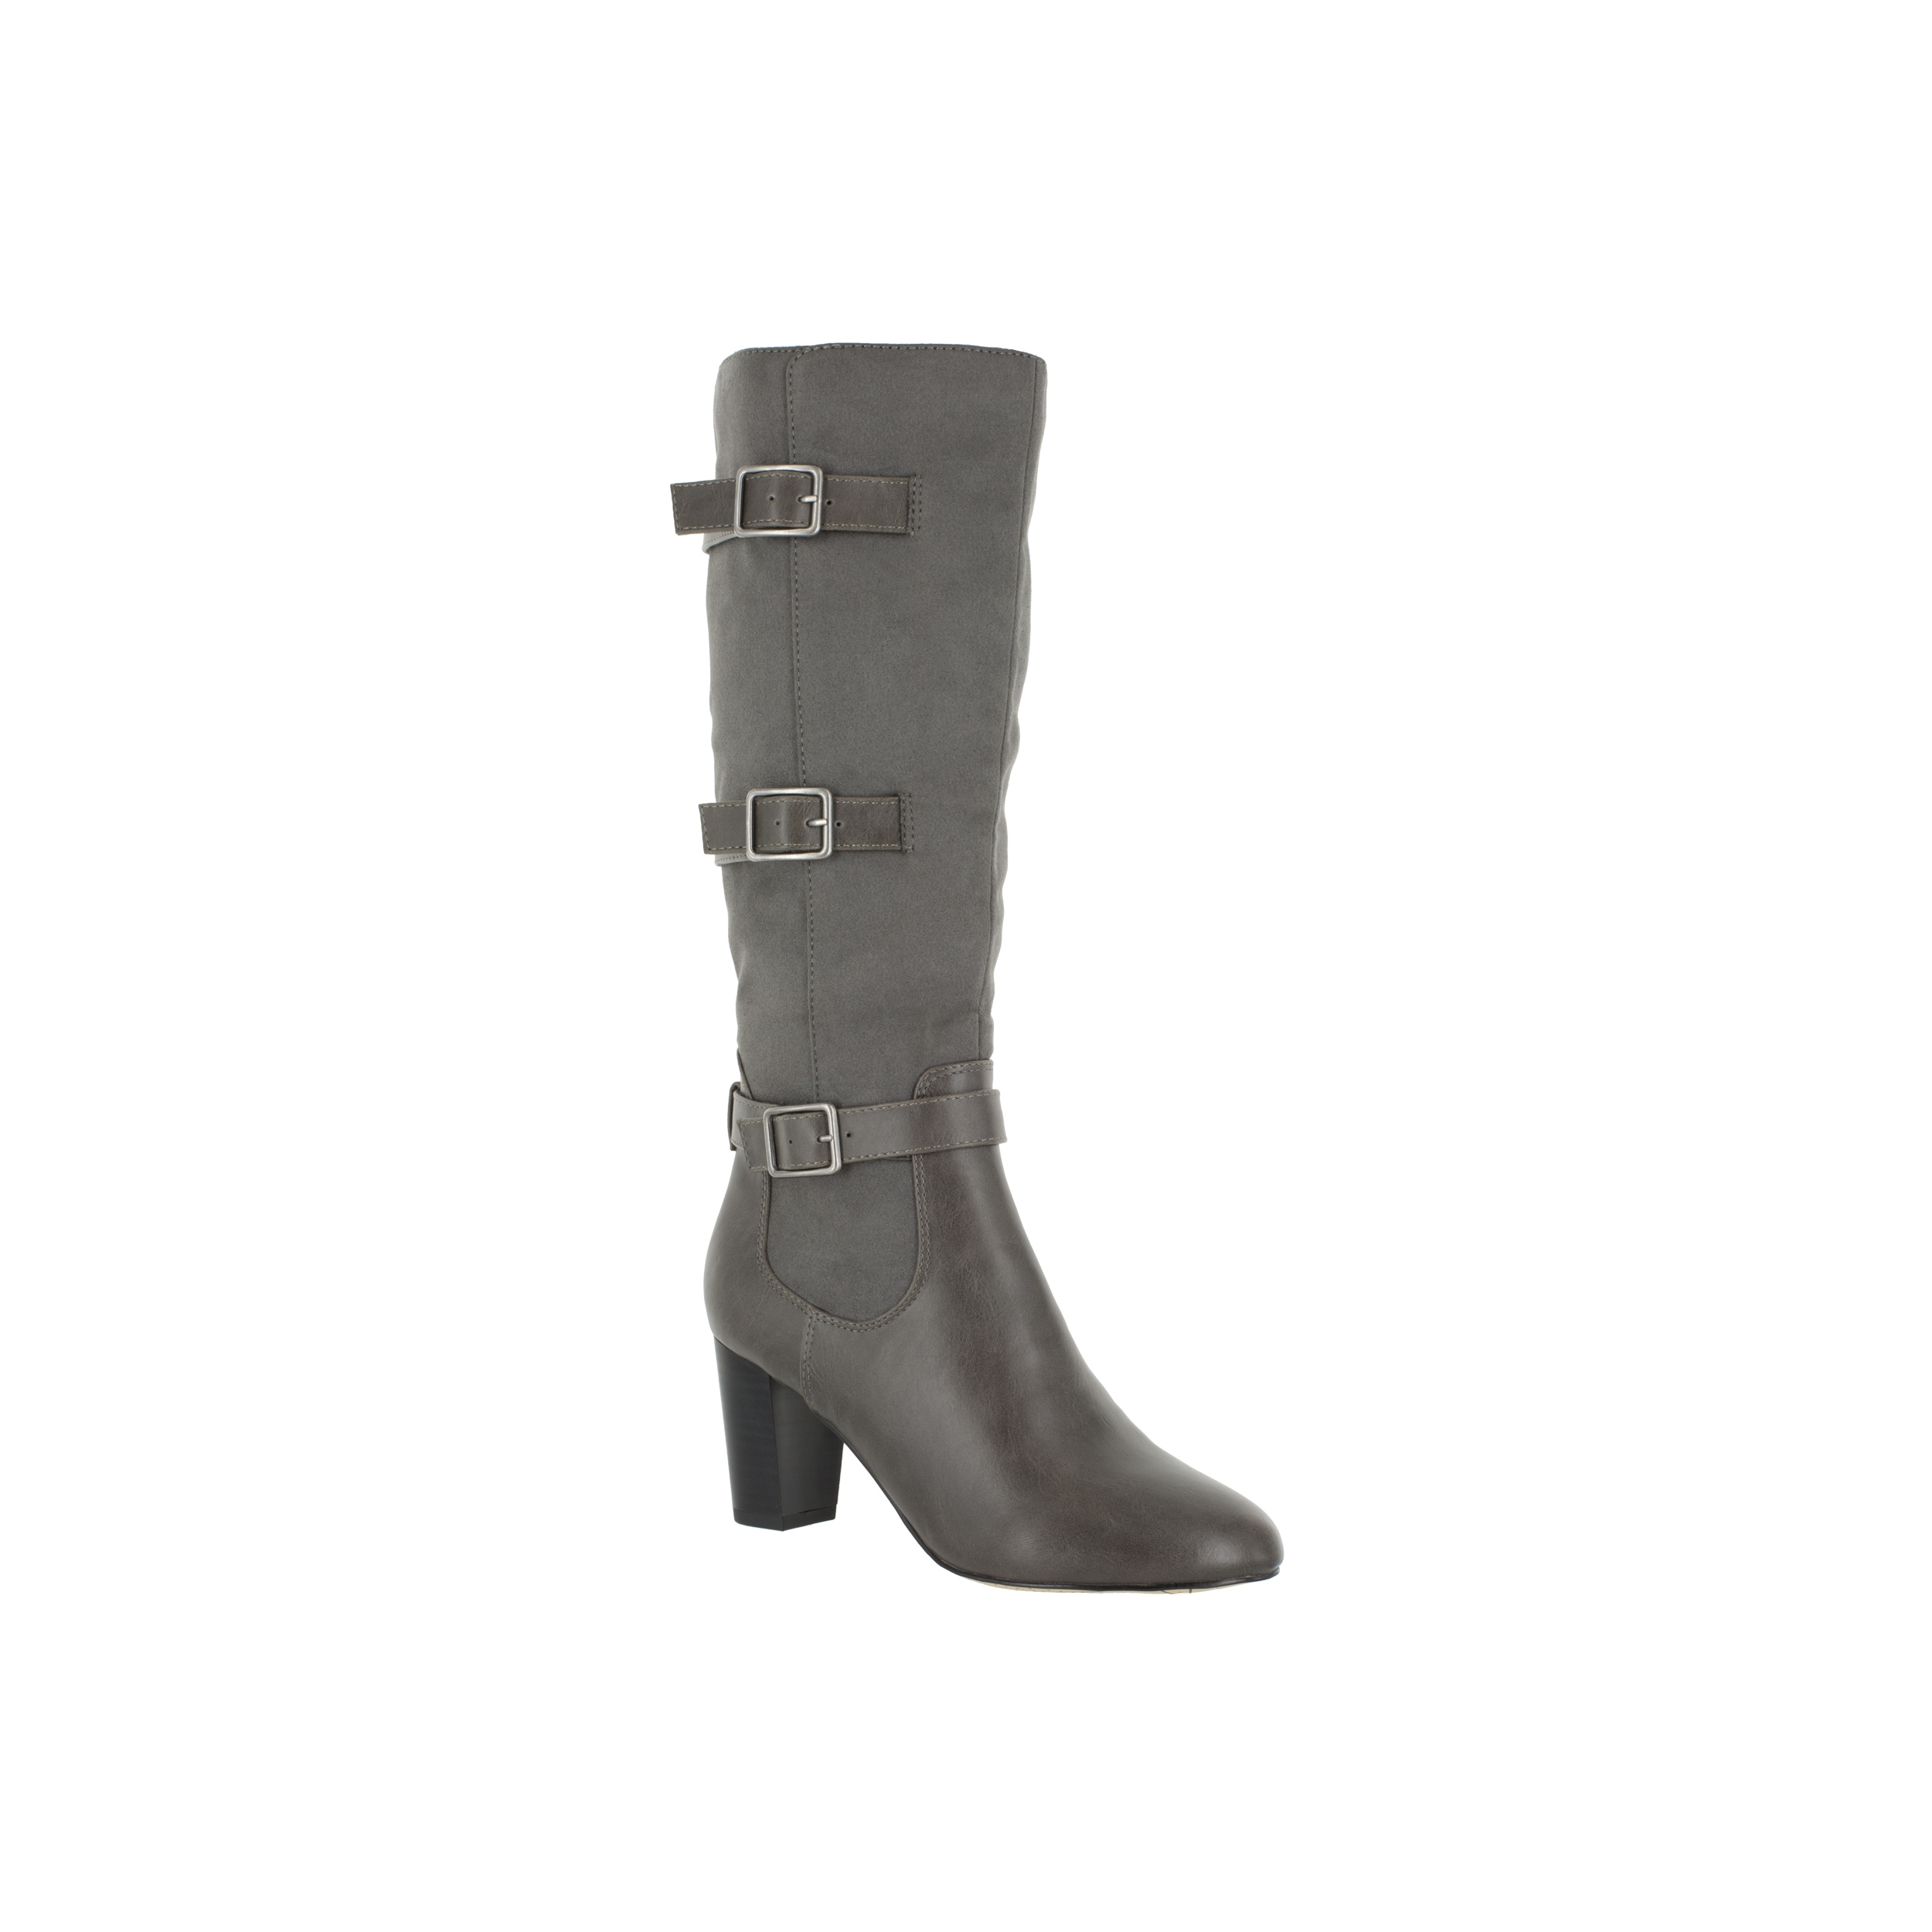 Bella Vita Women's Talina II Grey Suede Tall Boots by Overstock